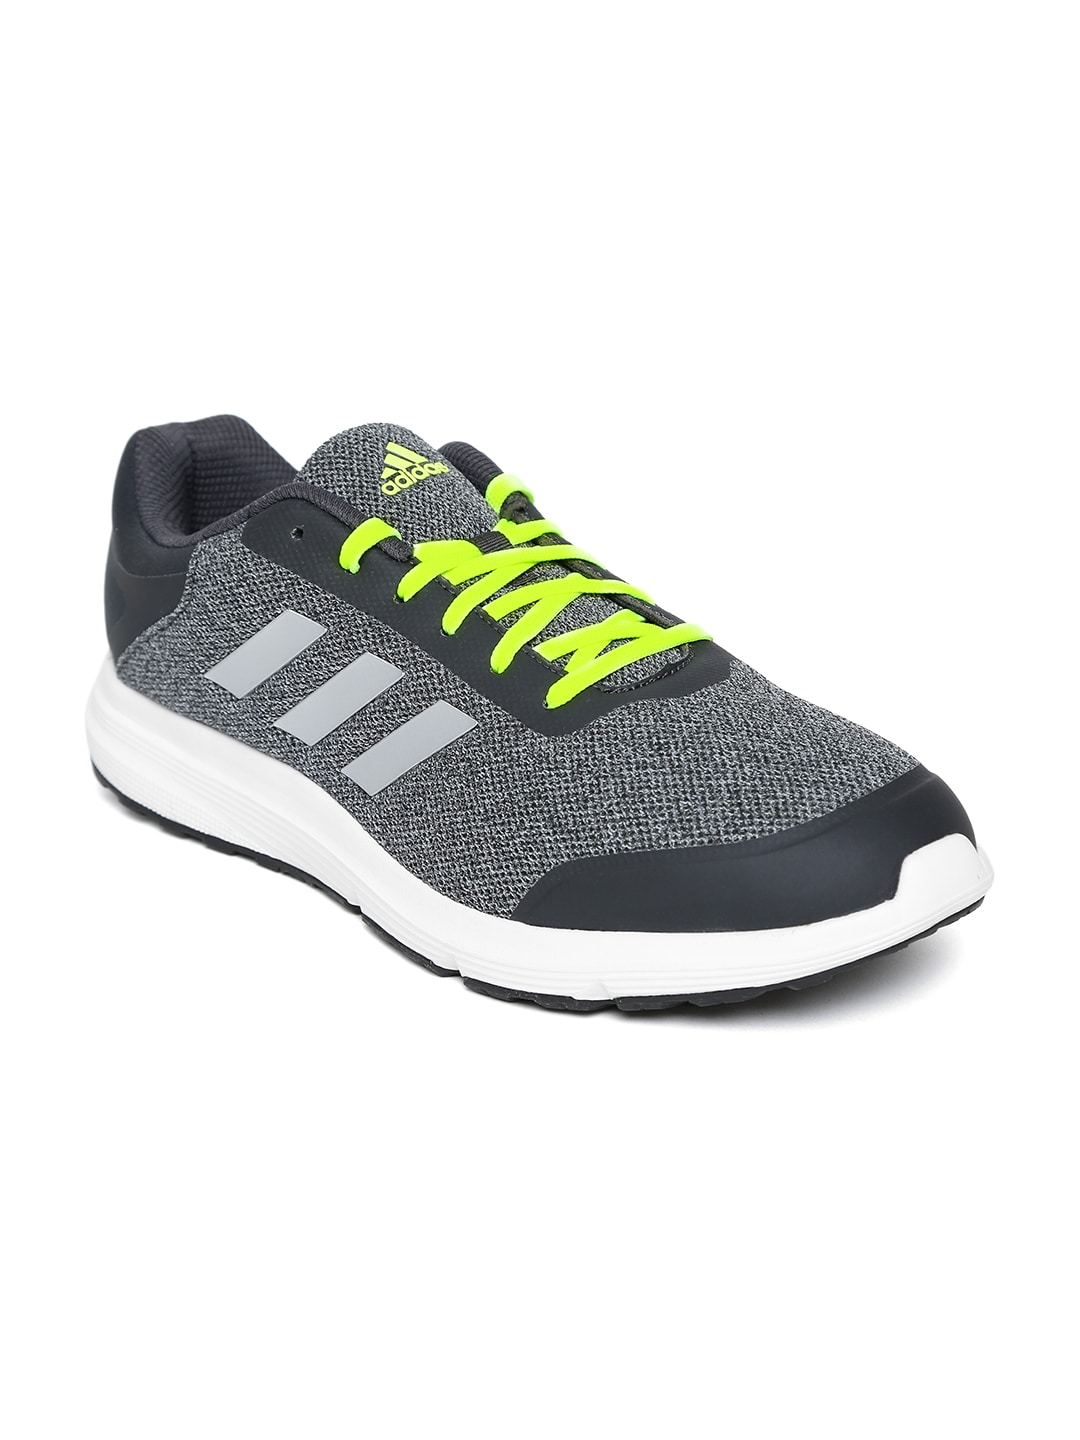 premium selection 47626 0f42d Sports Shoes for Men - Buy Men Sports Shoes Online in India - Myntra